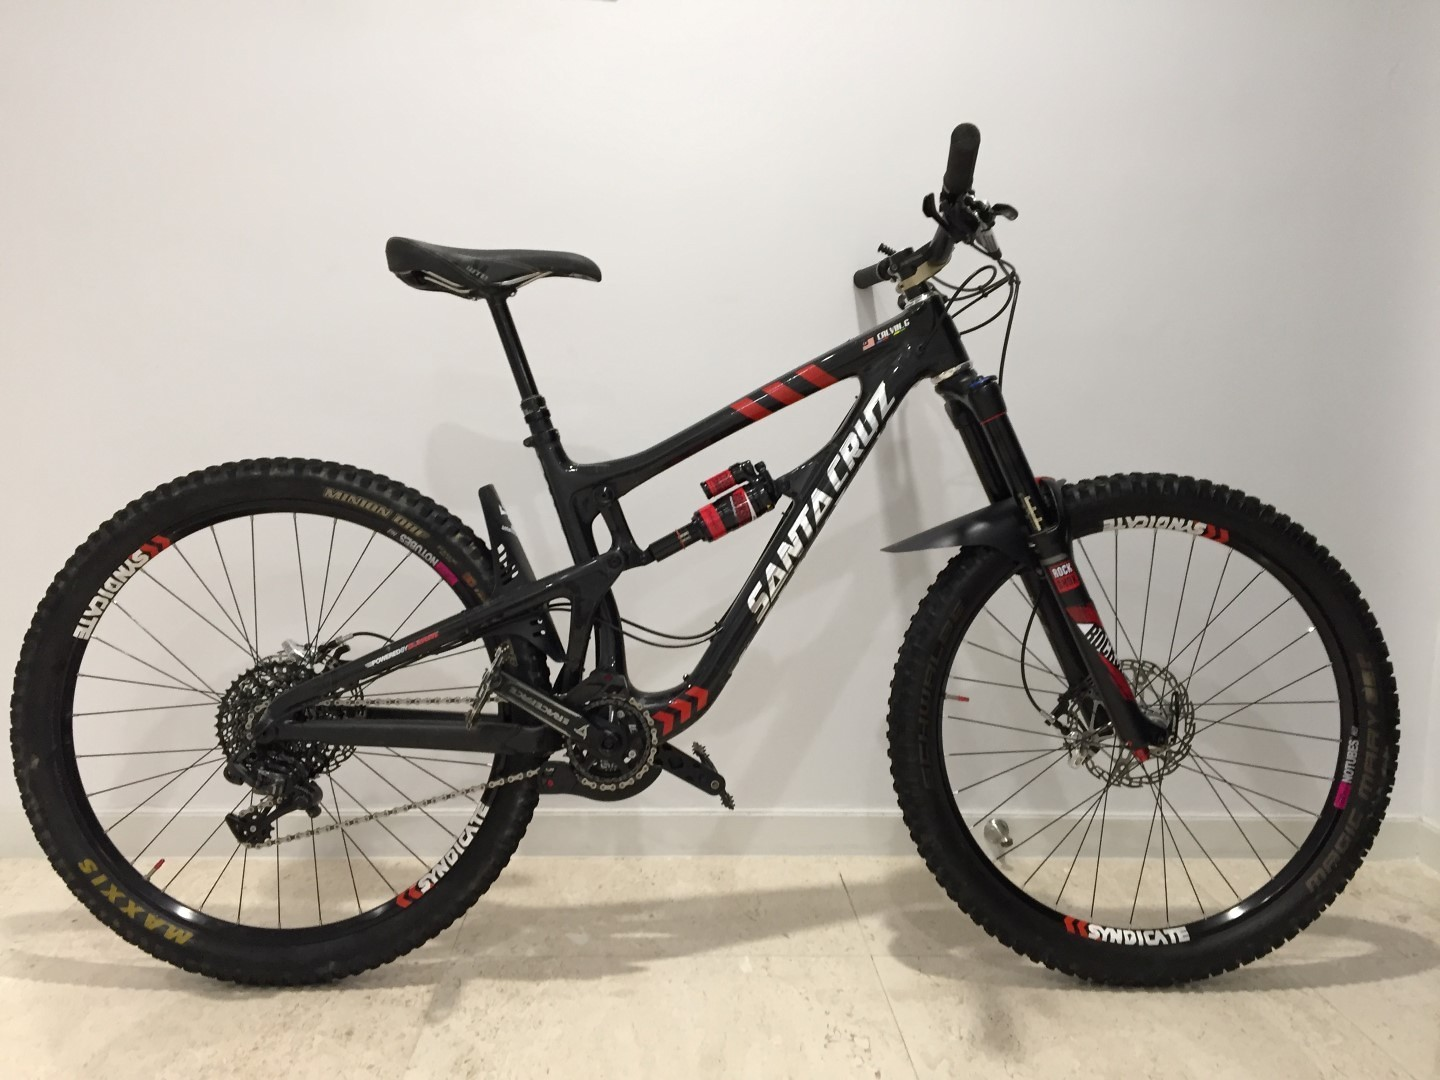 2016 Santa Cruz Syndicate Nomad